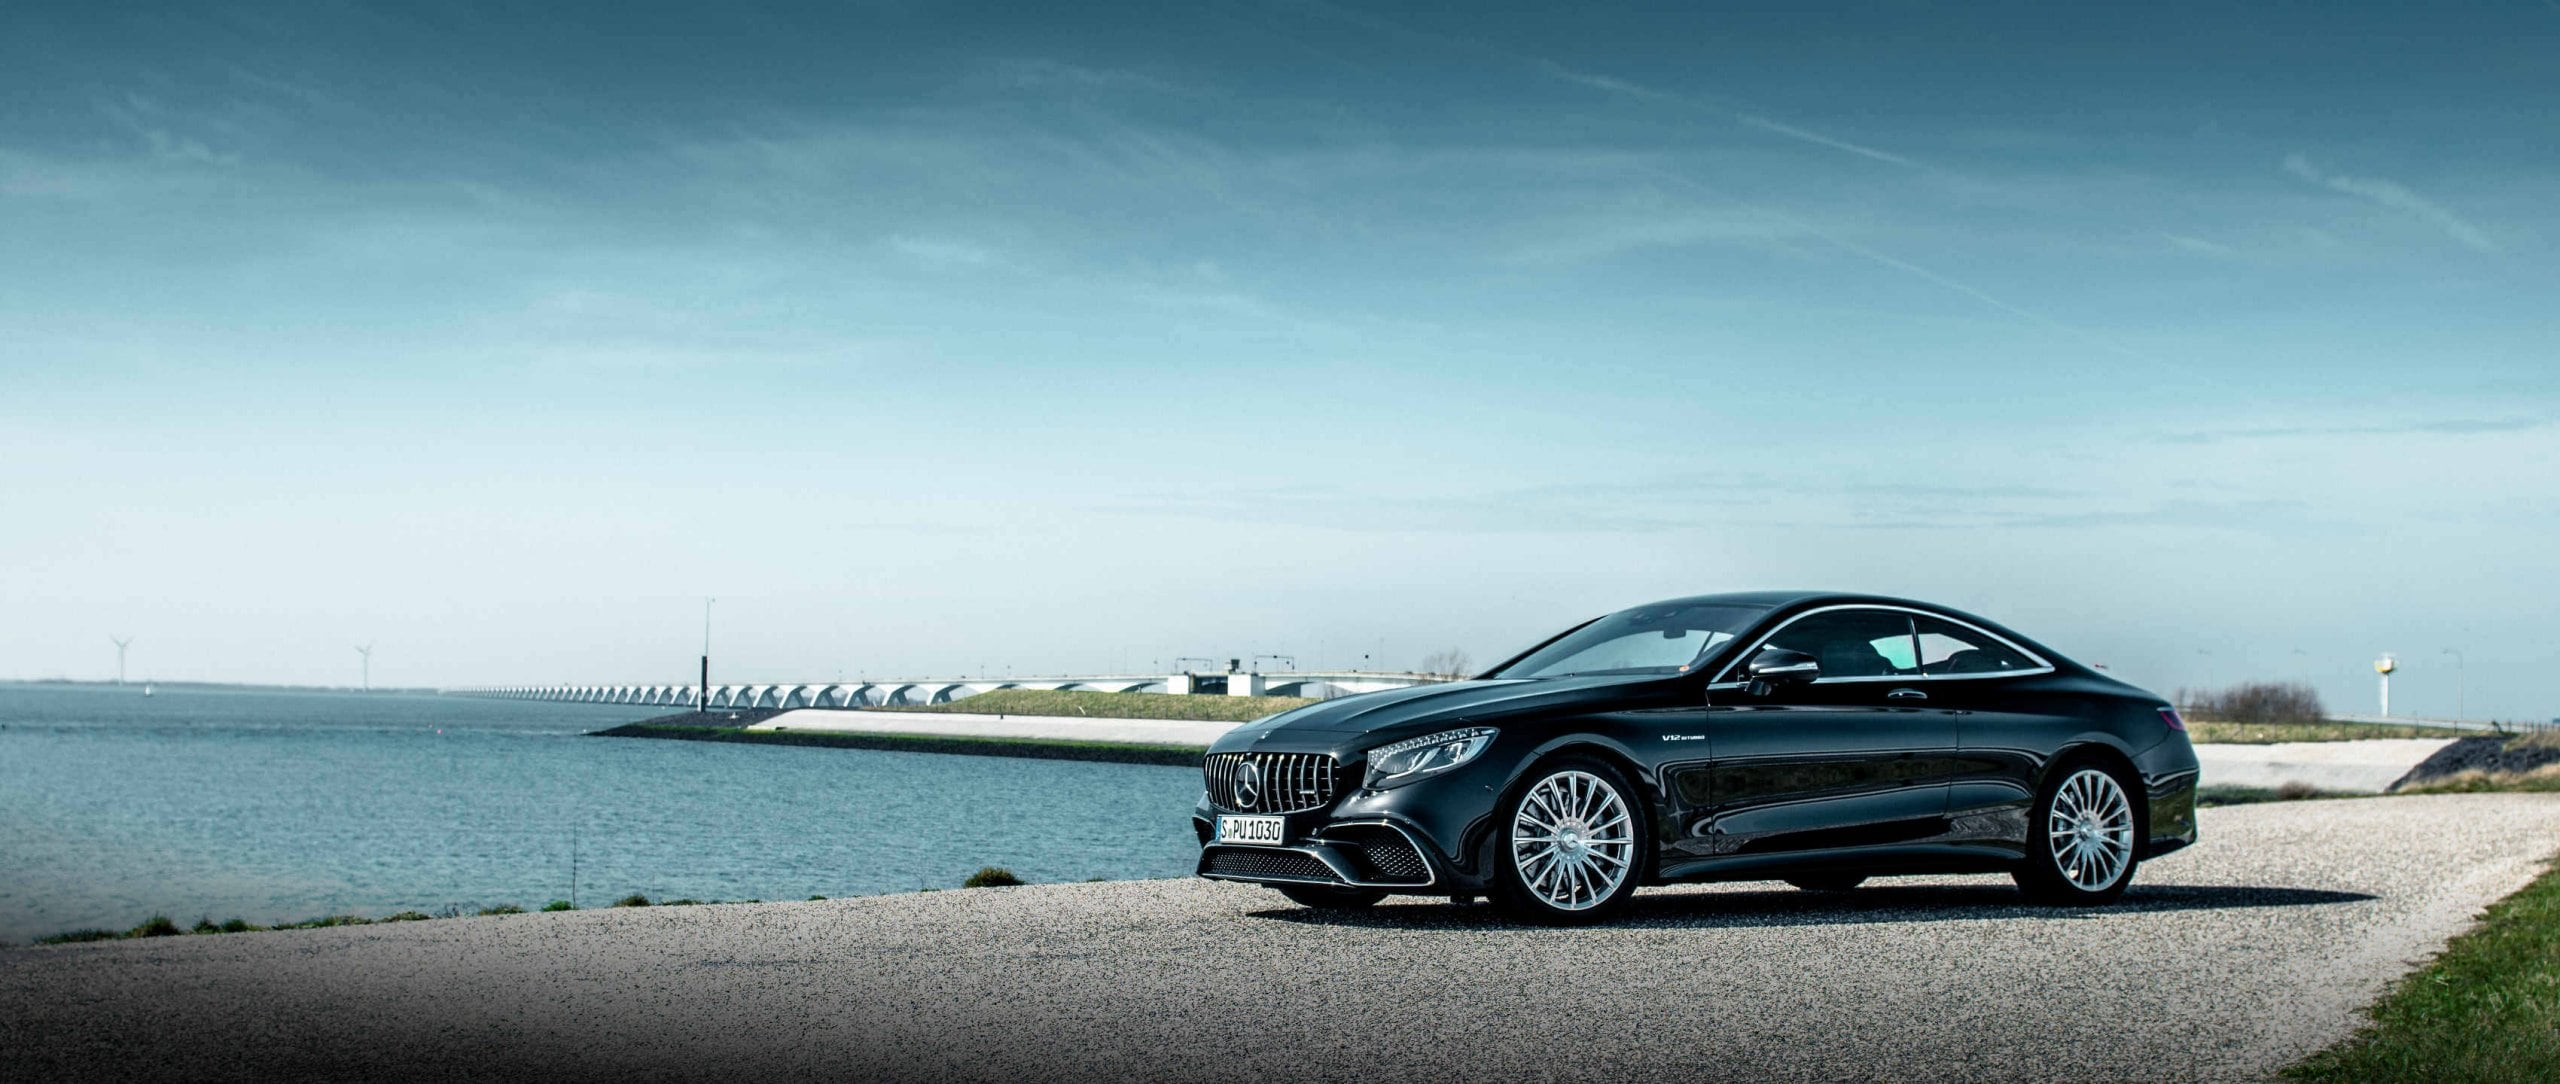 Mercedes-AMG S 65 Coupé (C 217) in obsidian black metallic with a 6.0-litre V12 biturbo engine.